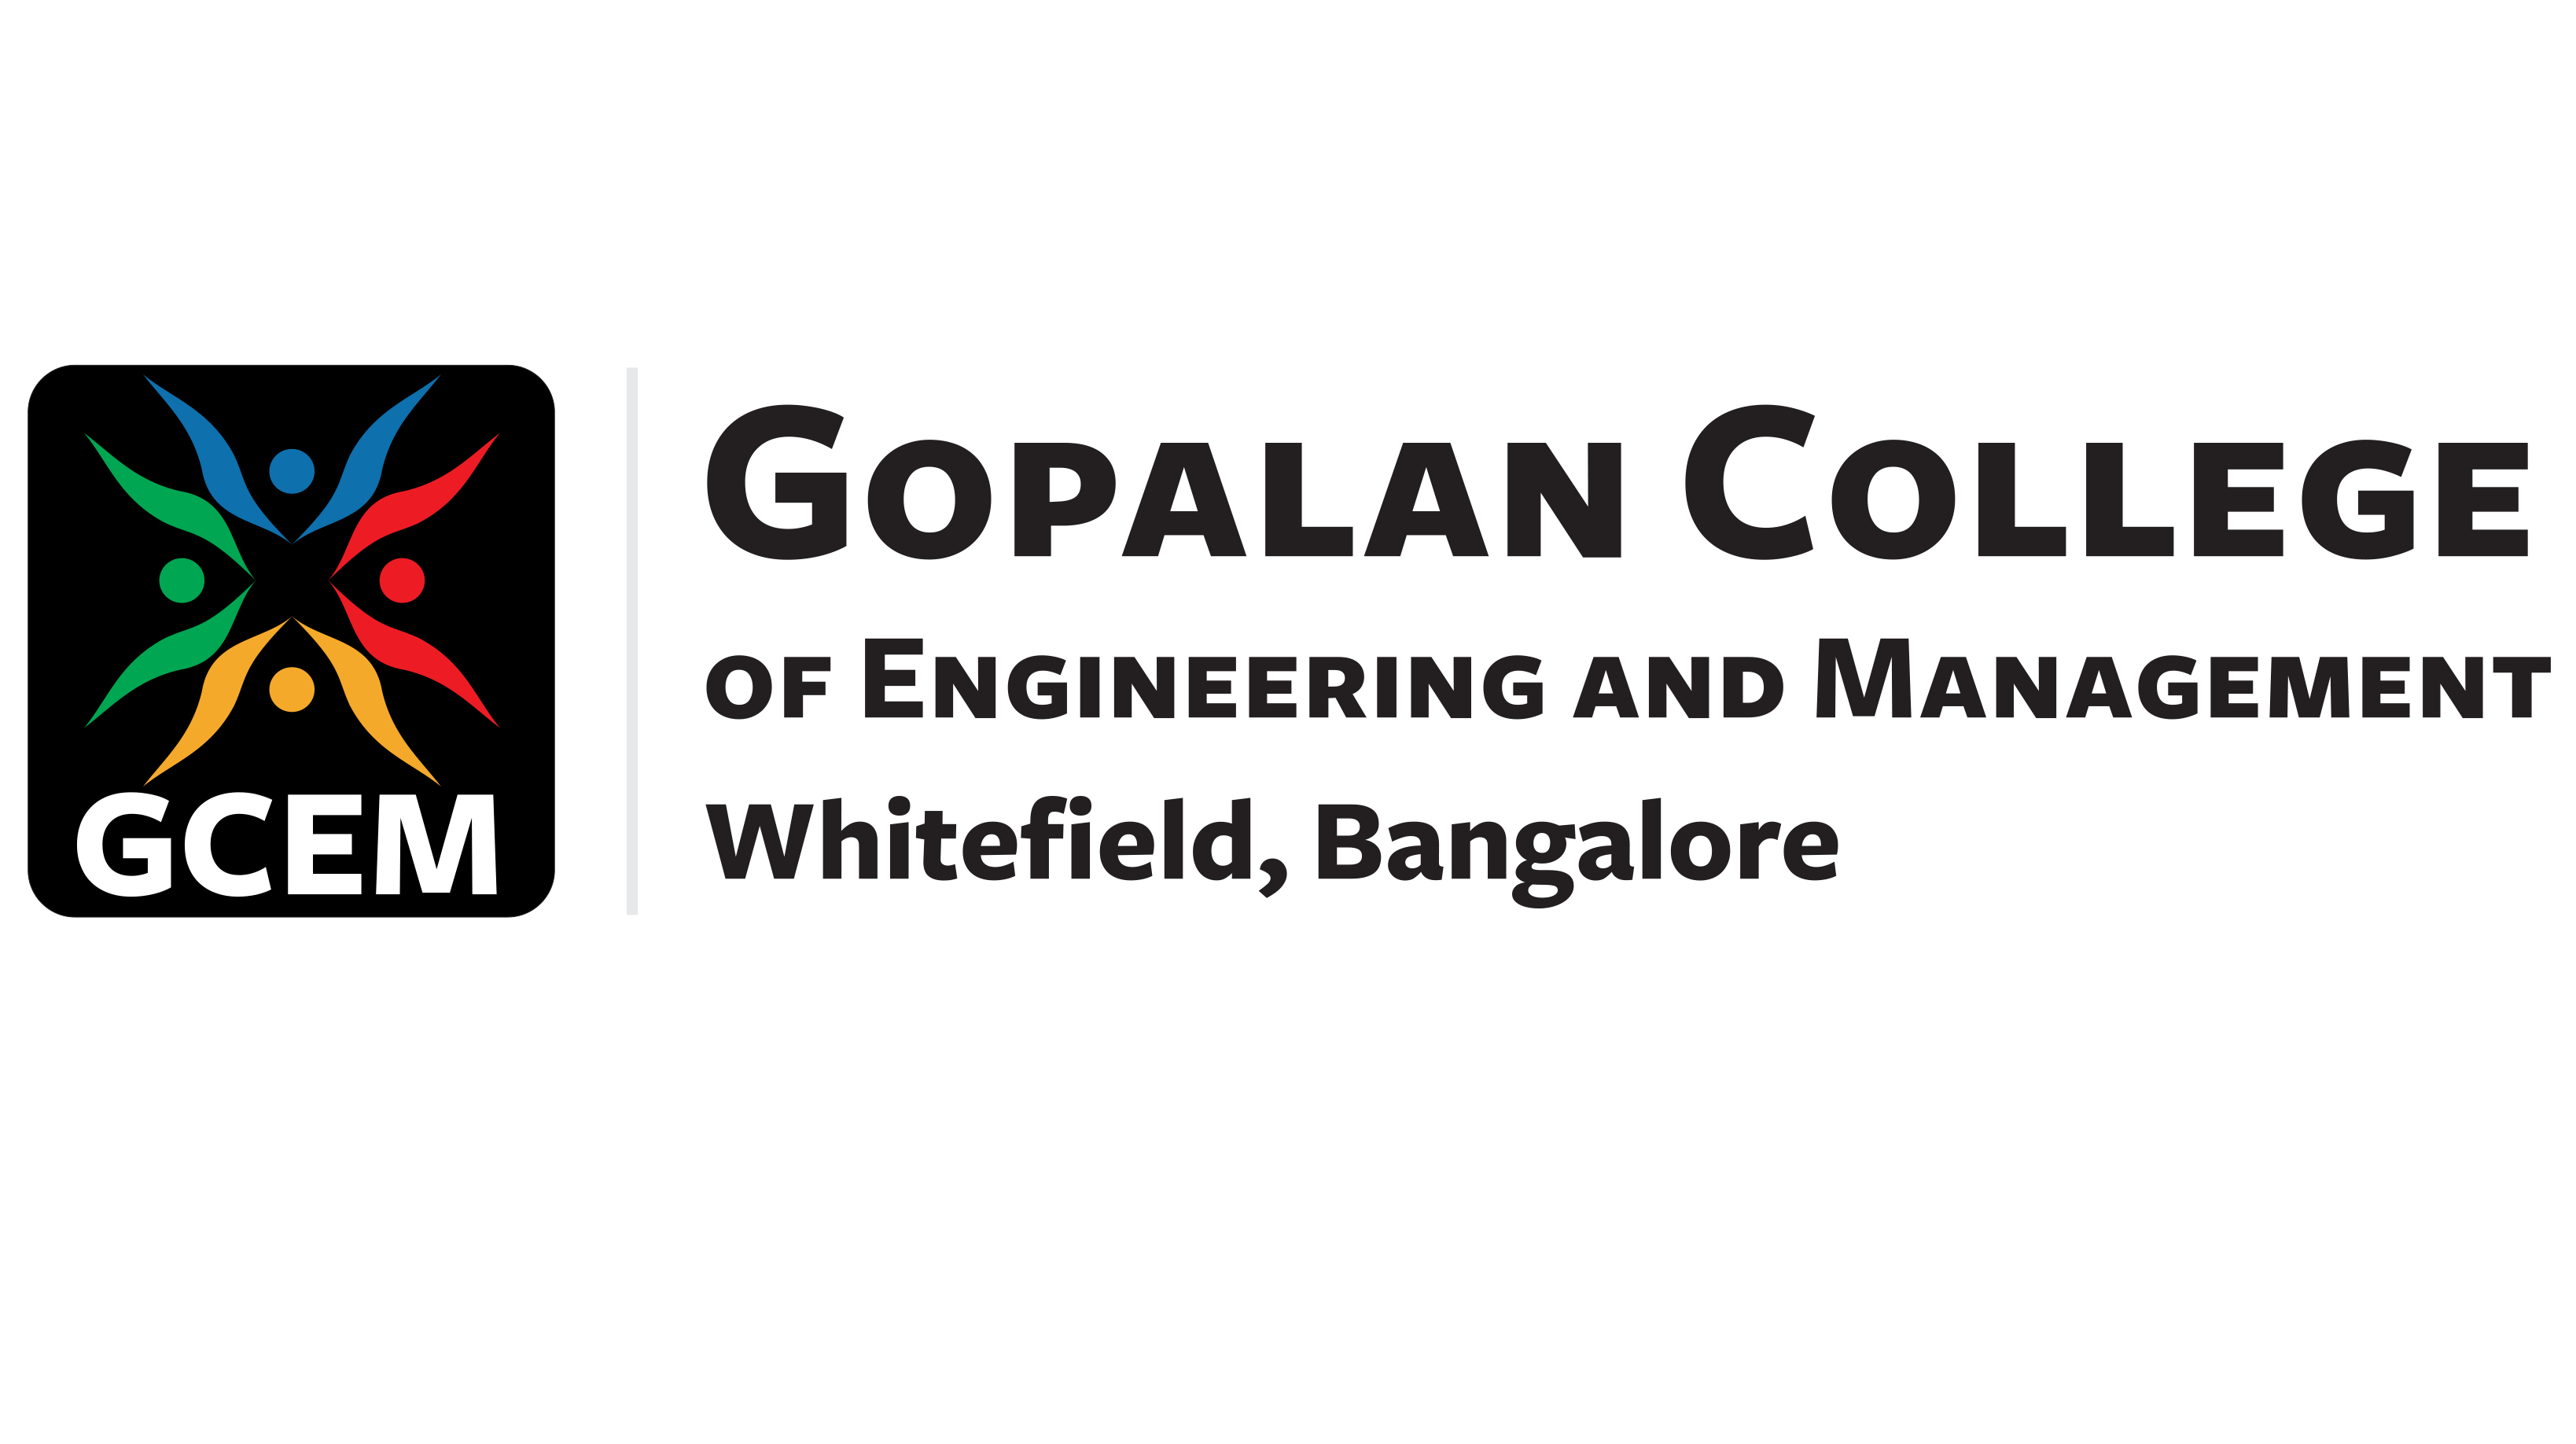 Gopalan College of Engineering and Management